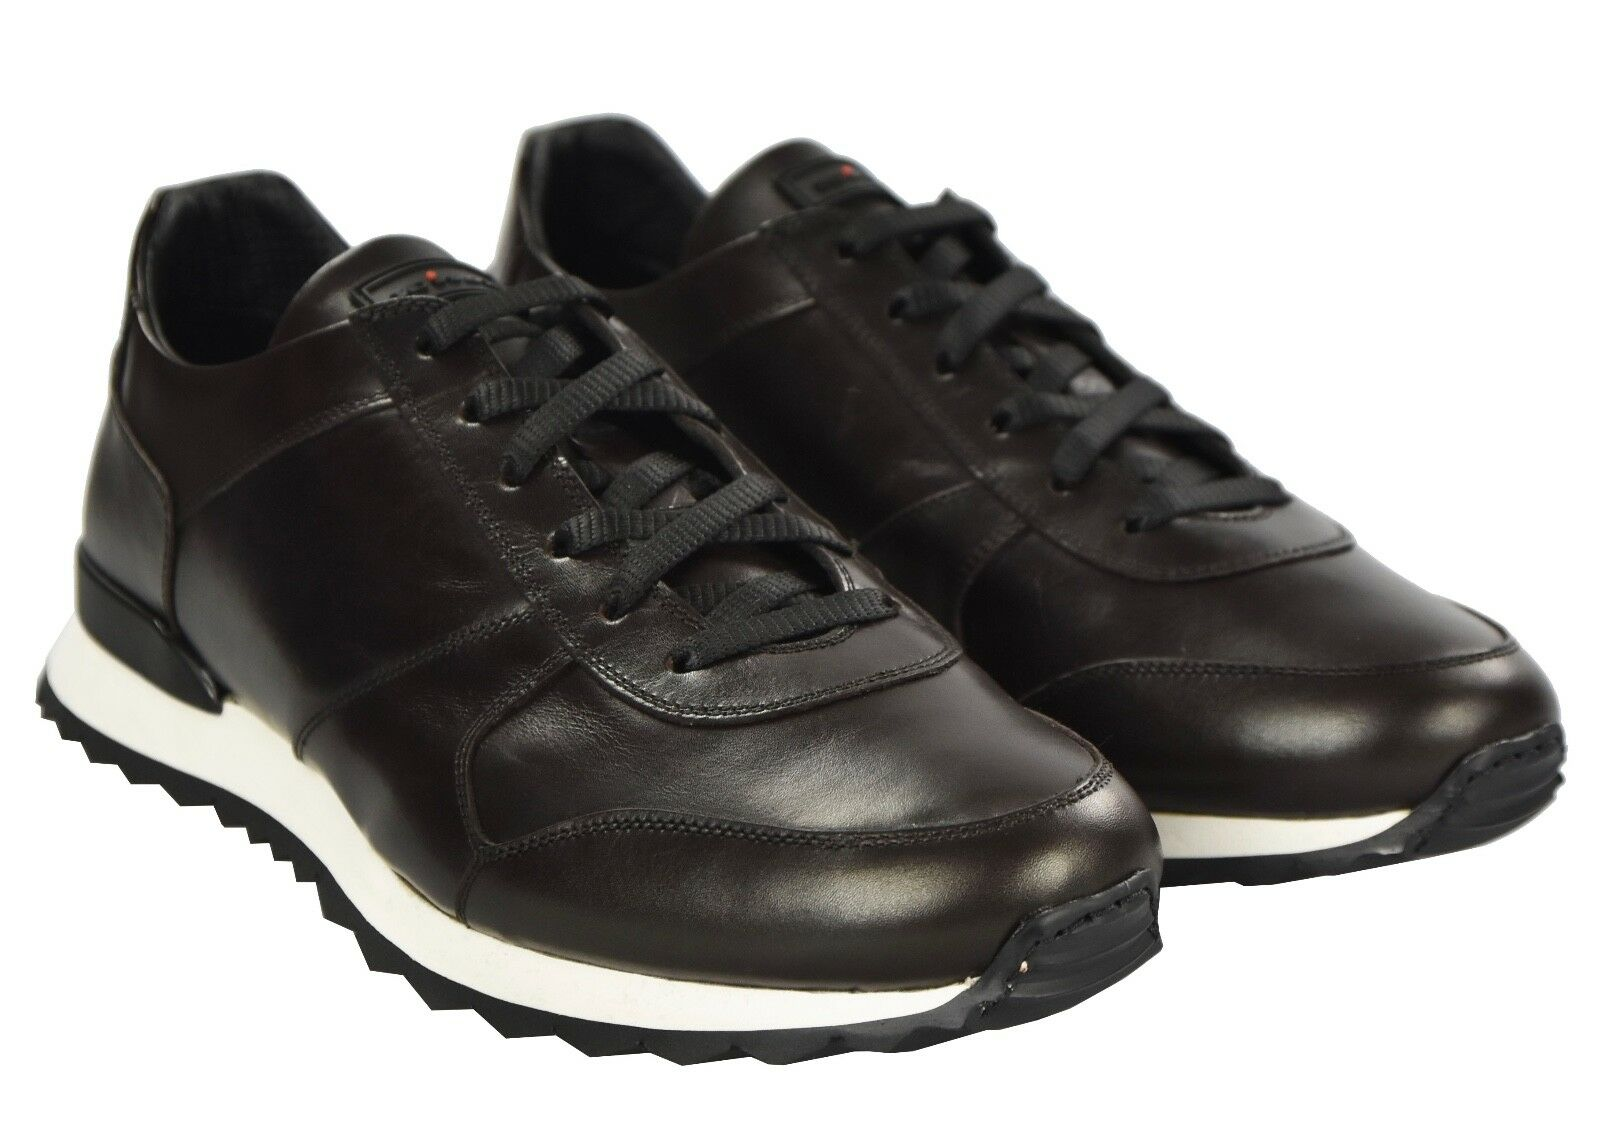 31fa75455 NEW KITON 100% LEATHER SIZE 10.5 US 43.5 KSCW8 SHOES SNEAKERS ...